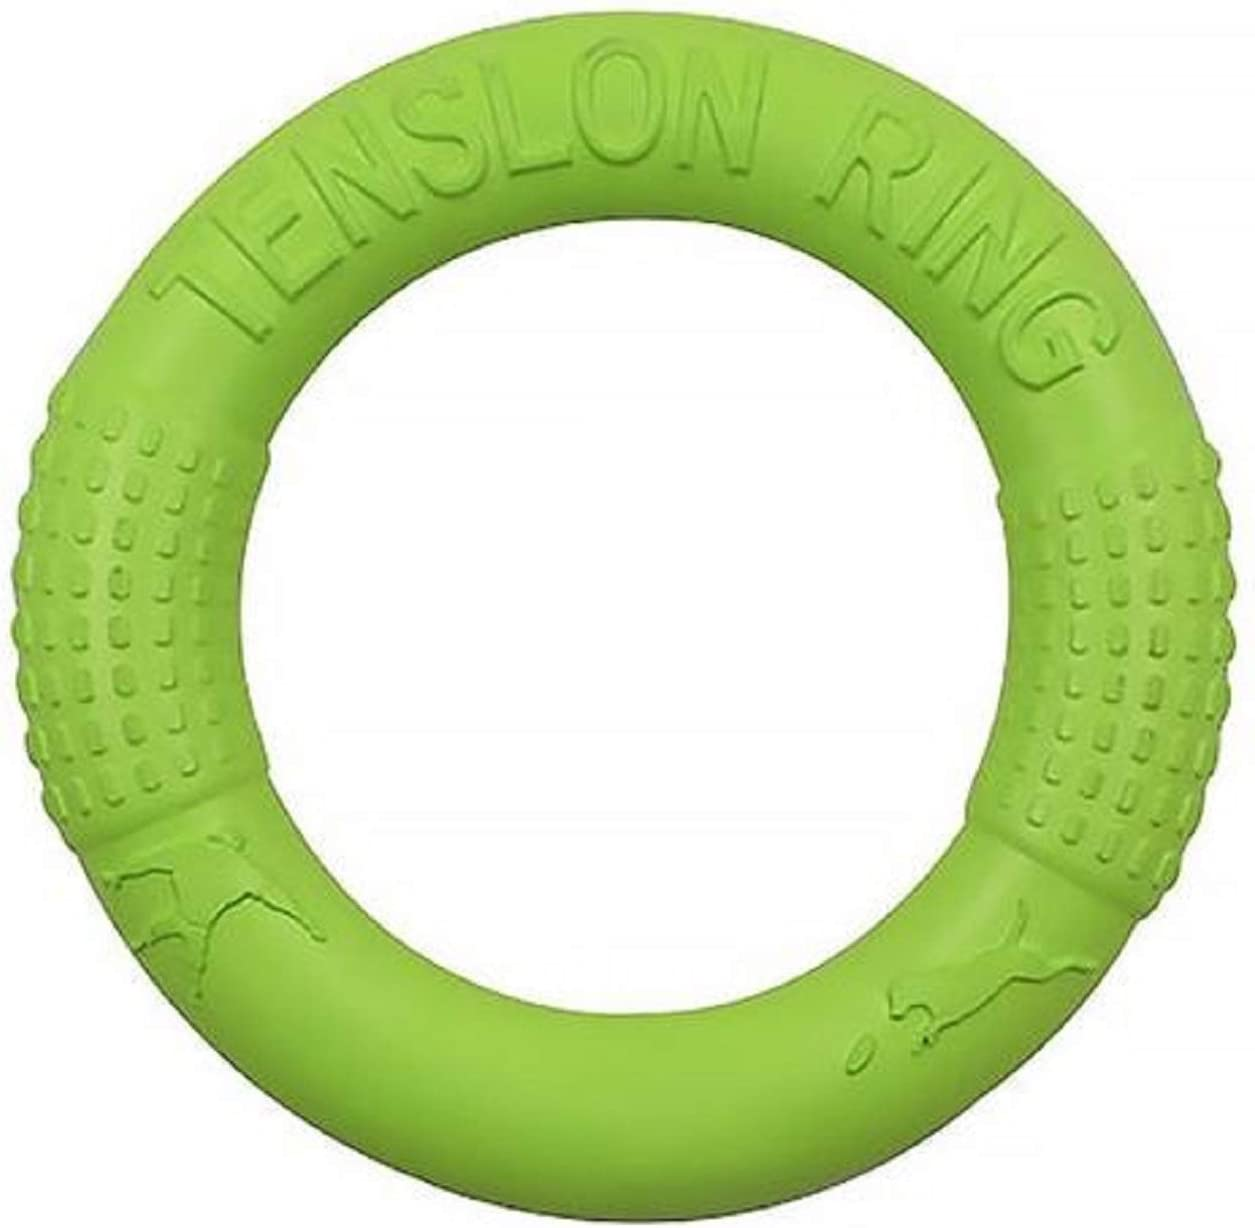 Dog Fitness Flying Discs EVA low-pricing Tug Water Toy Floating Max 69% OFF Outdoor